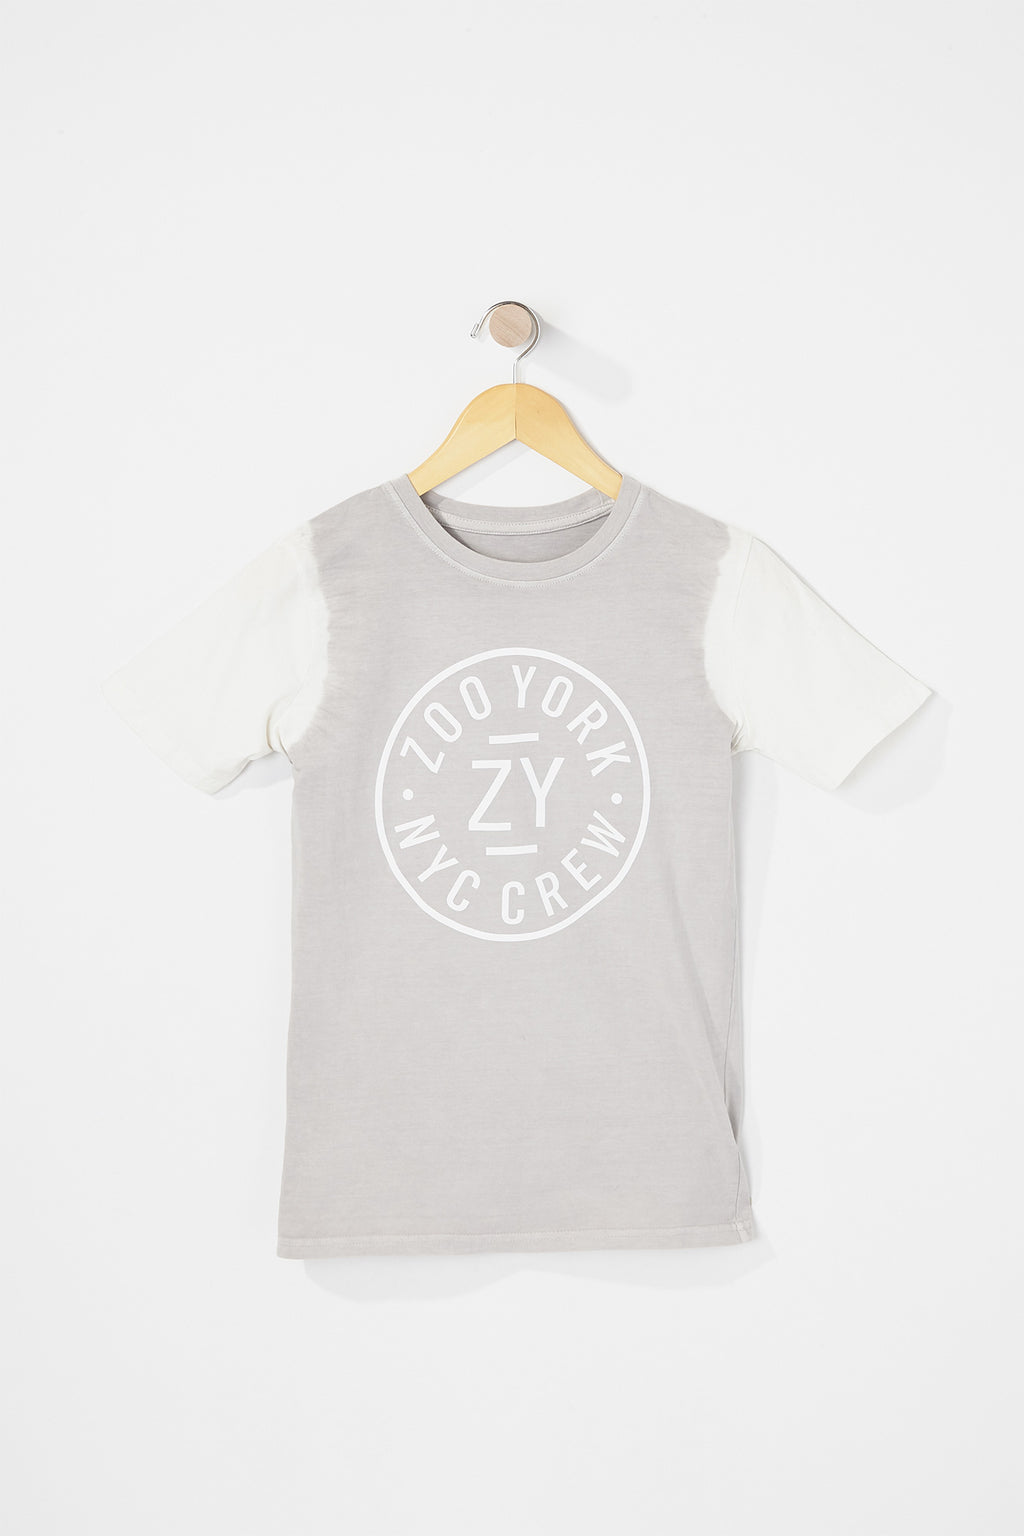 Zoo York Circle Logo Tie Dye T-Shirt